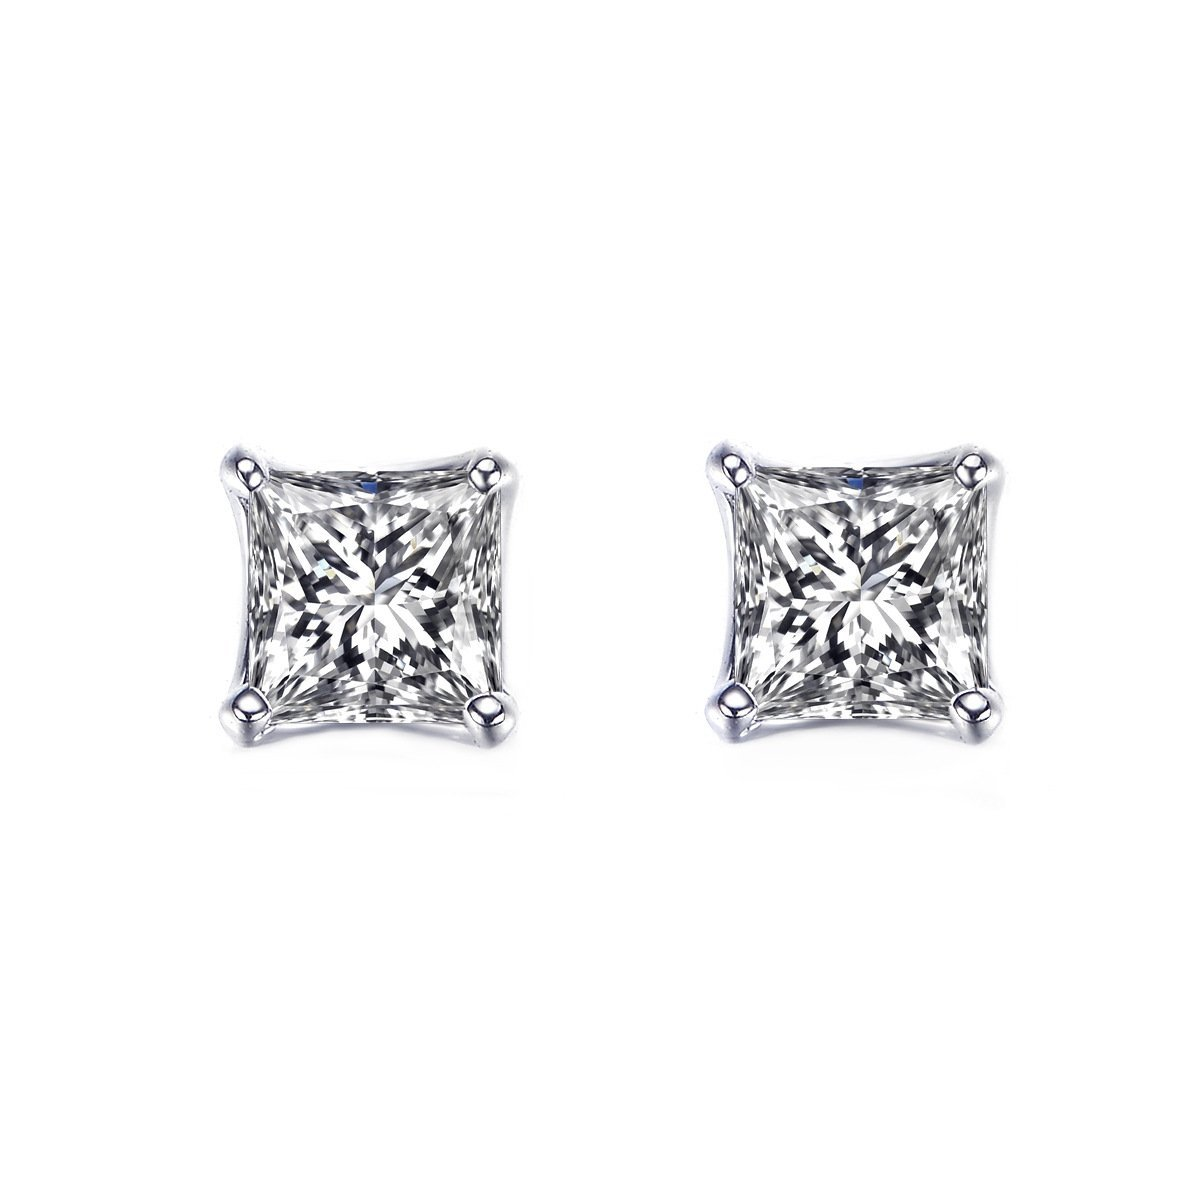 UMODE Jewelry Classic Tiny Sparking 2 Pieces 0.63 Carat Princess-cut Cubic Zirconia Stud Earrings UE0049CA